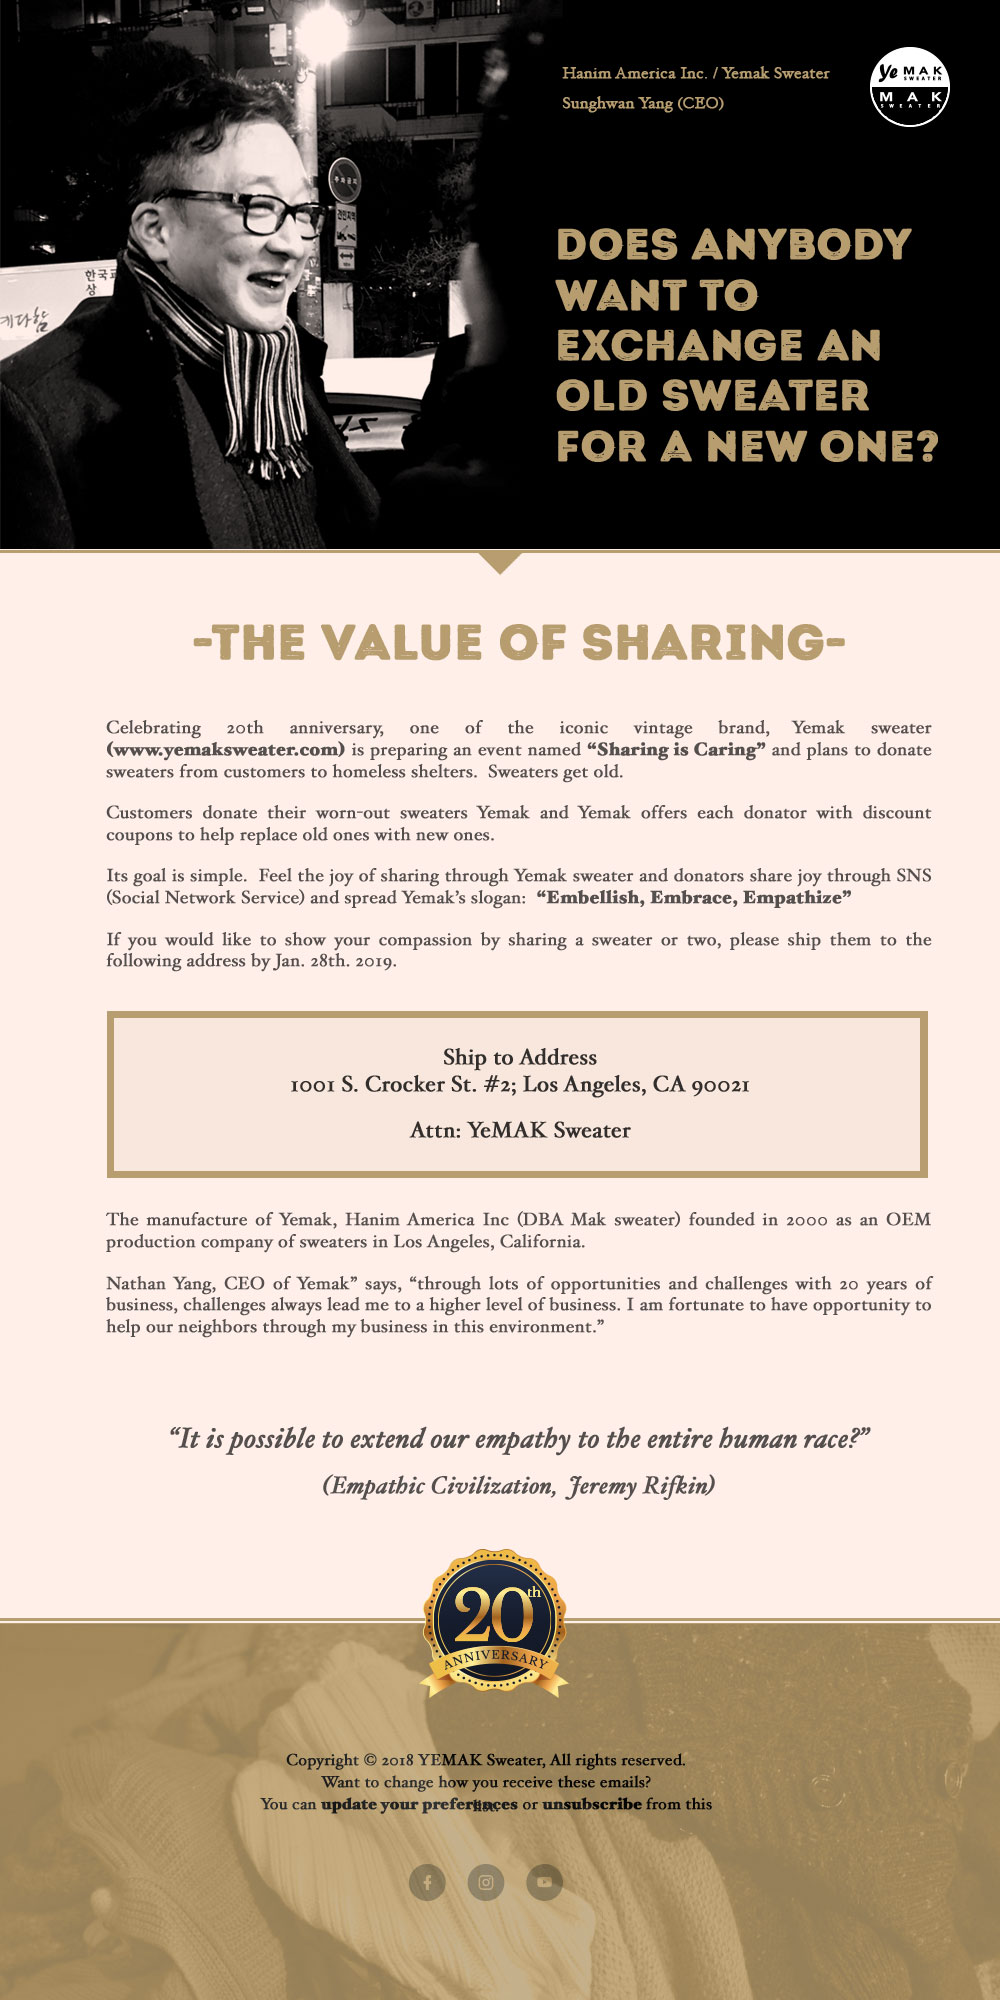 Value Of Sharing Through Yemak Sweater